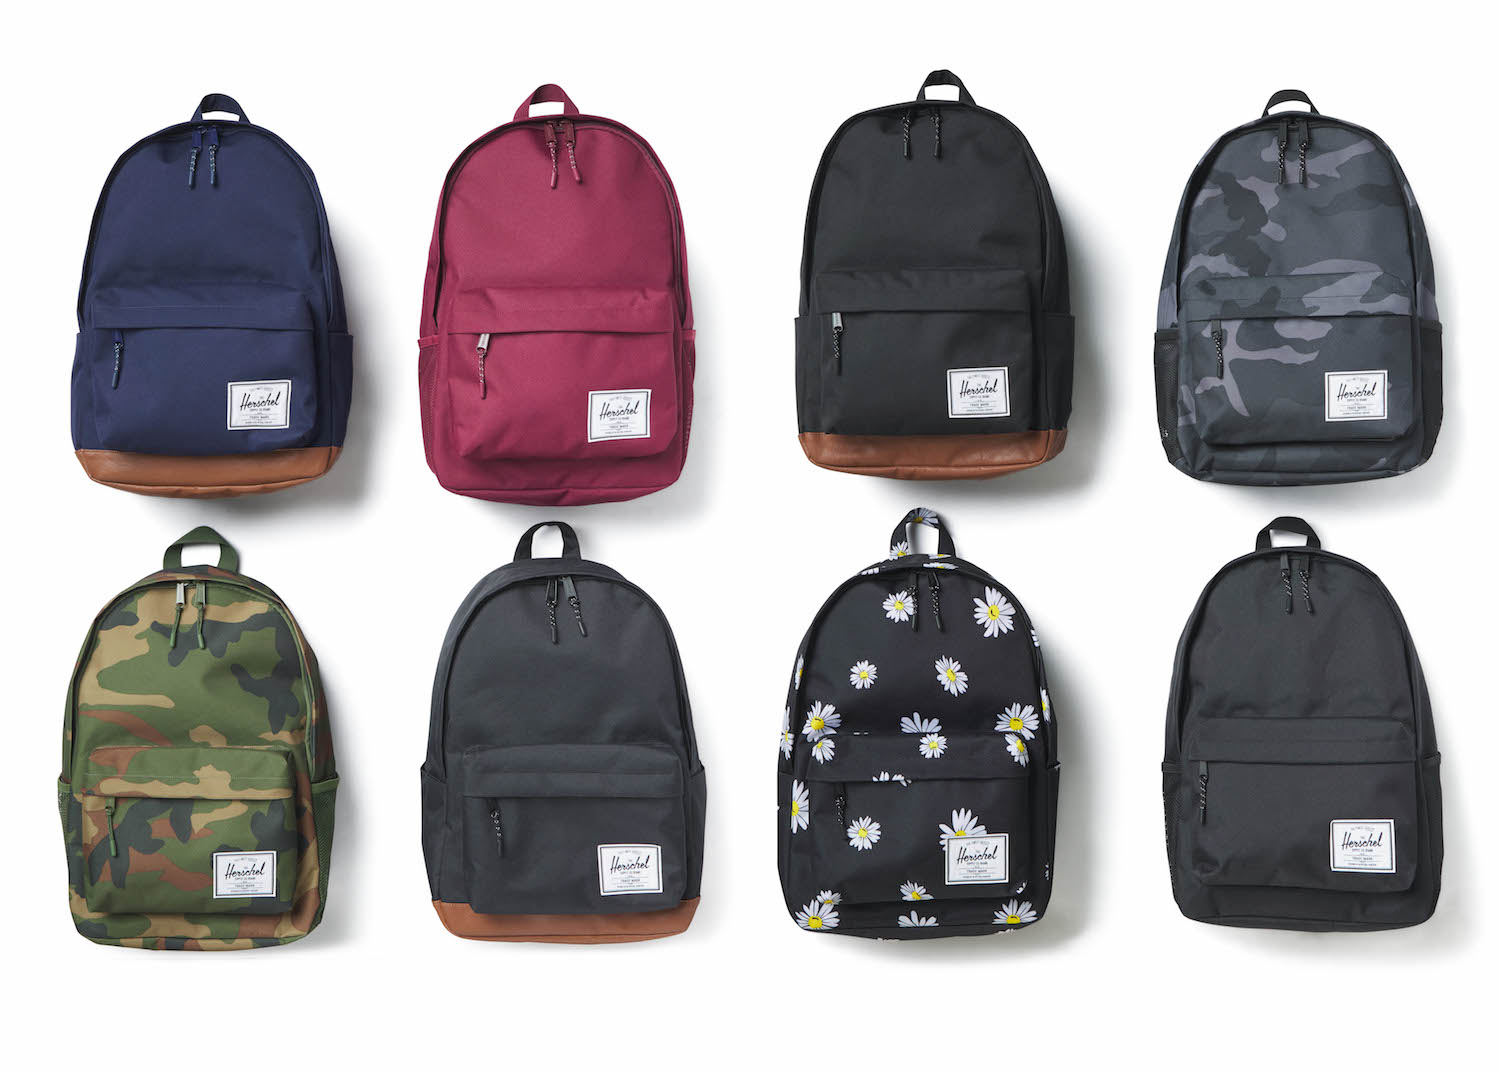 TILLYS-Editorial-Damion-Lloyd-Photography-Laydown-Commercial-Apparel-Product-Clothing-Art-Directed-Los-Angeles-Orange-County-Herschel-backpacks-camo-black-red-blue-grid